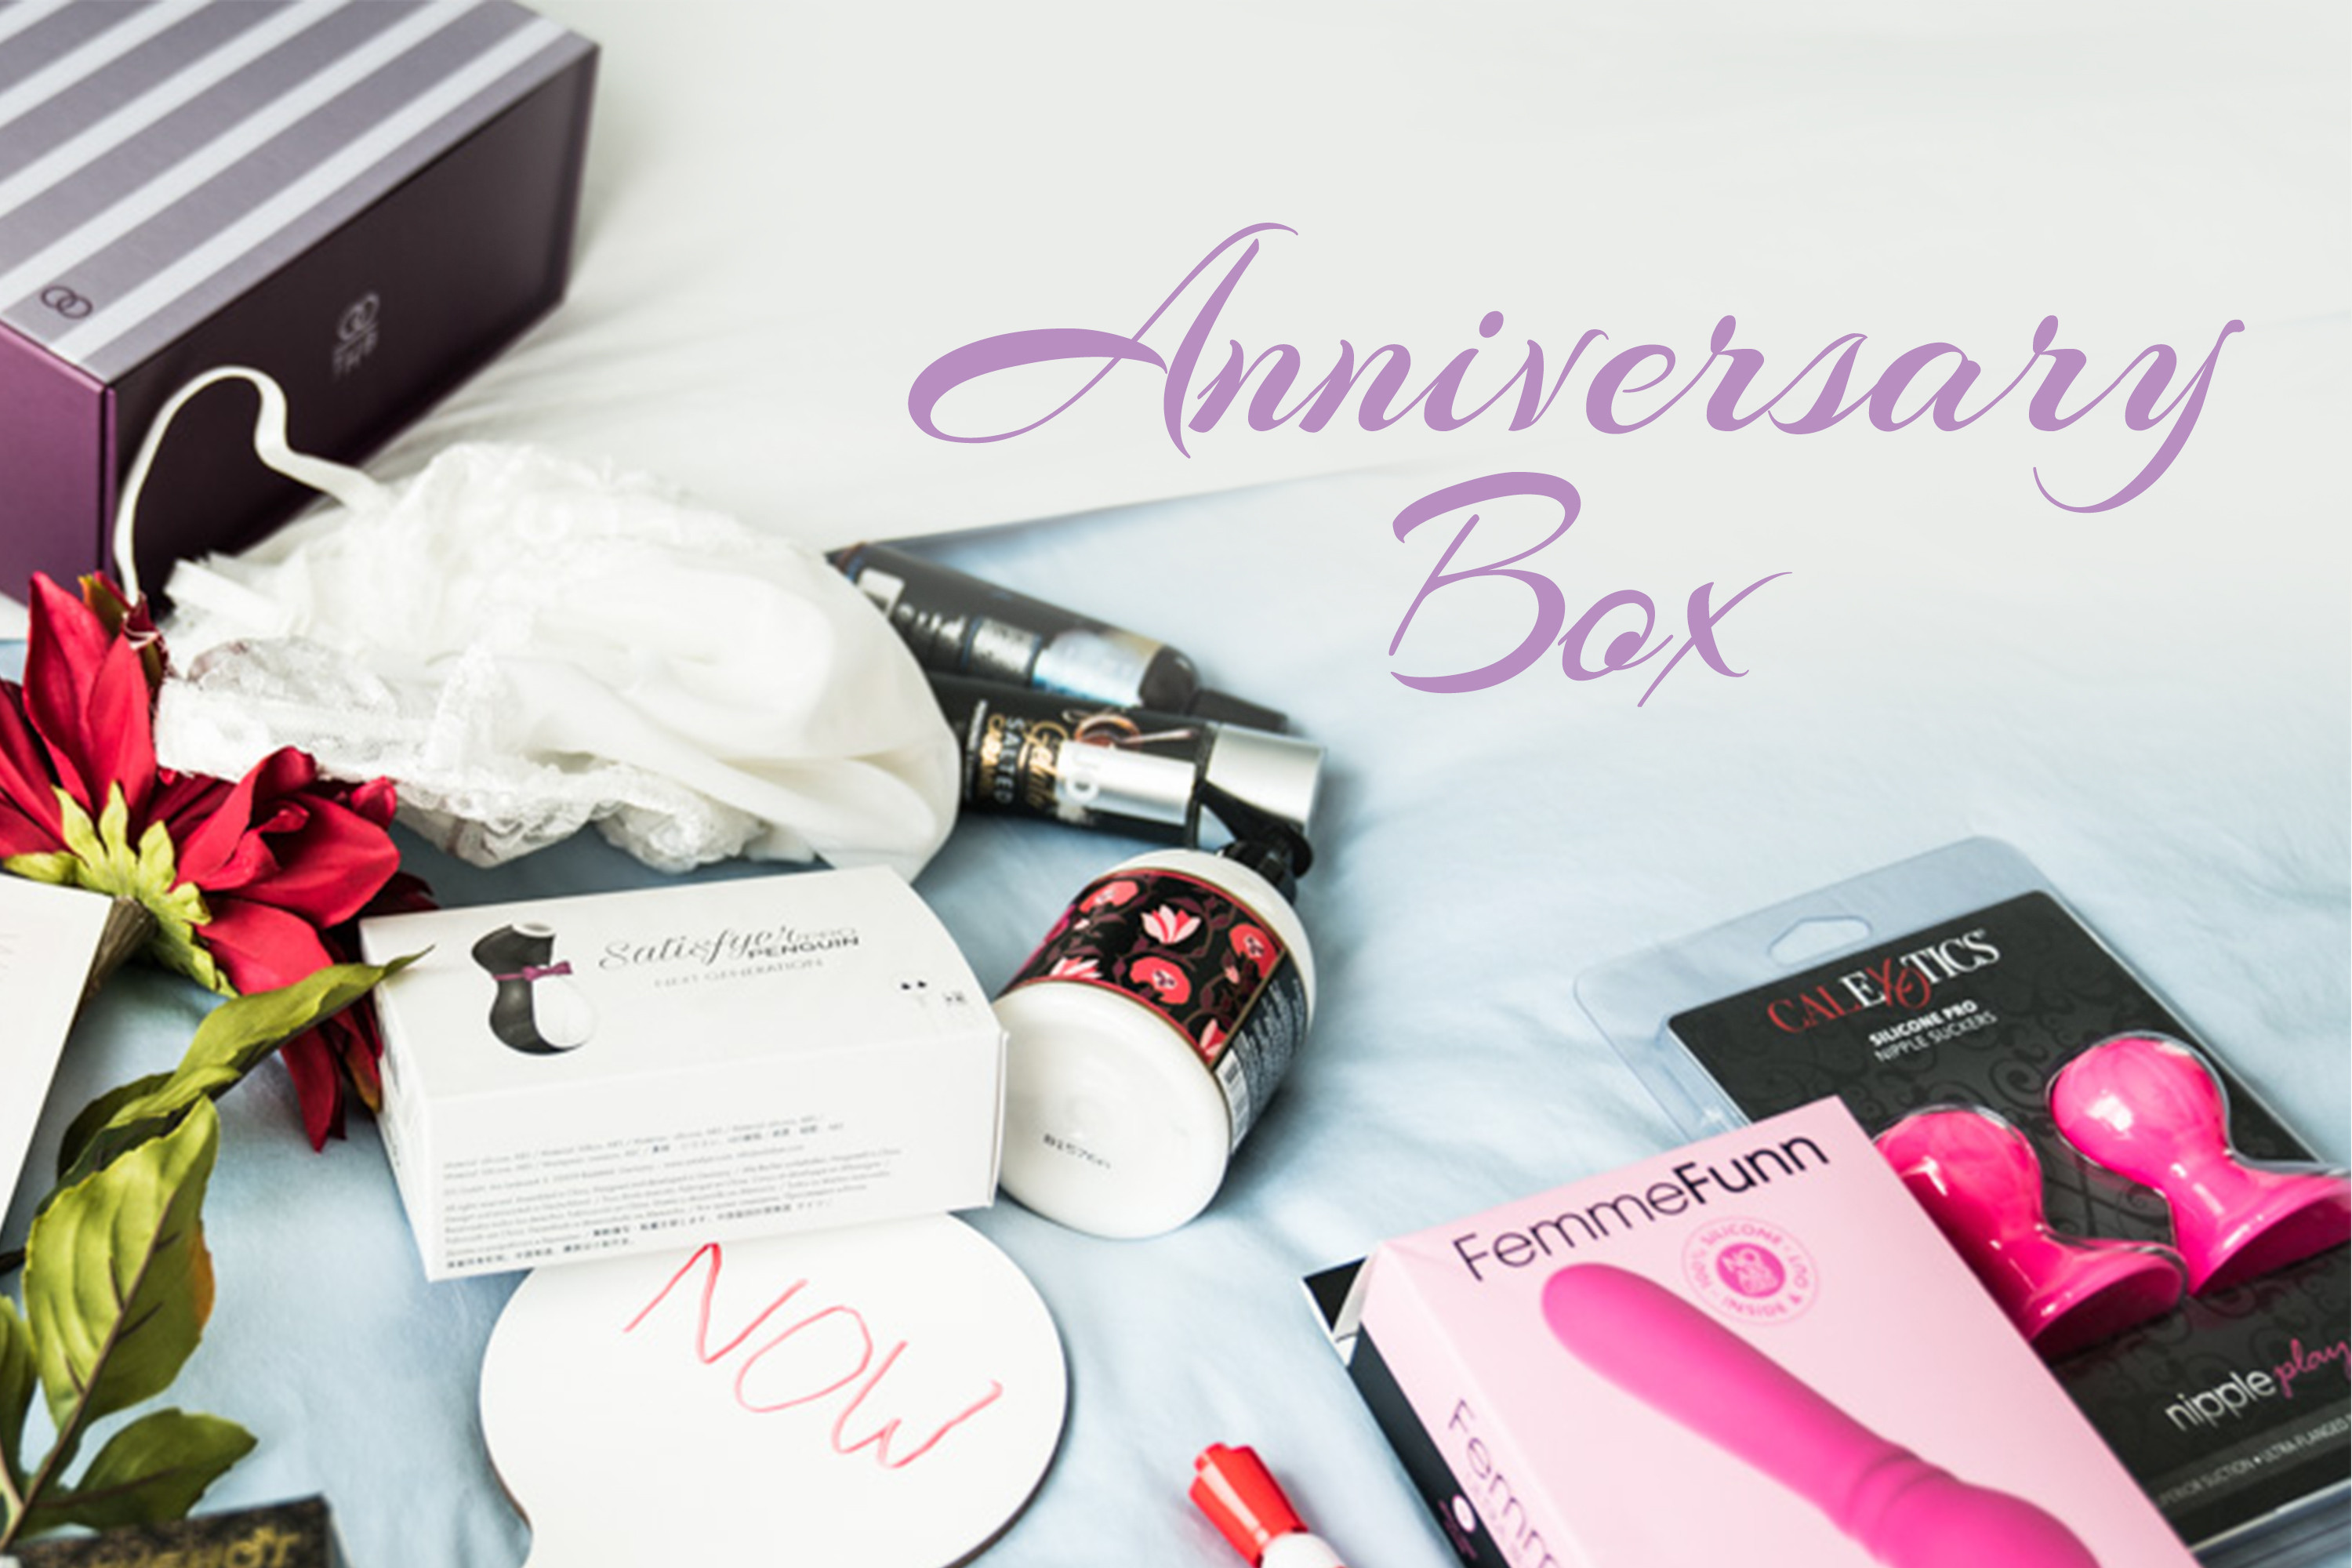 What to do on your first anniversary